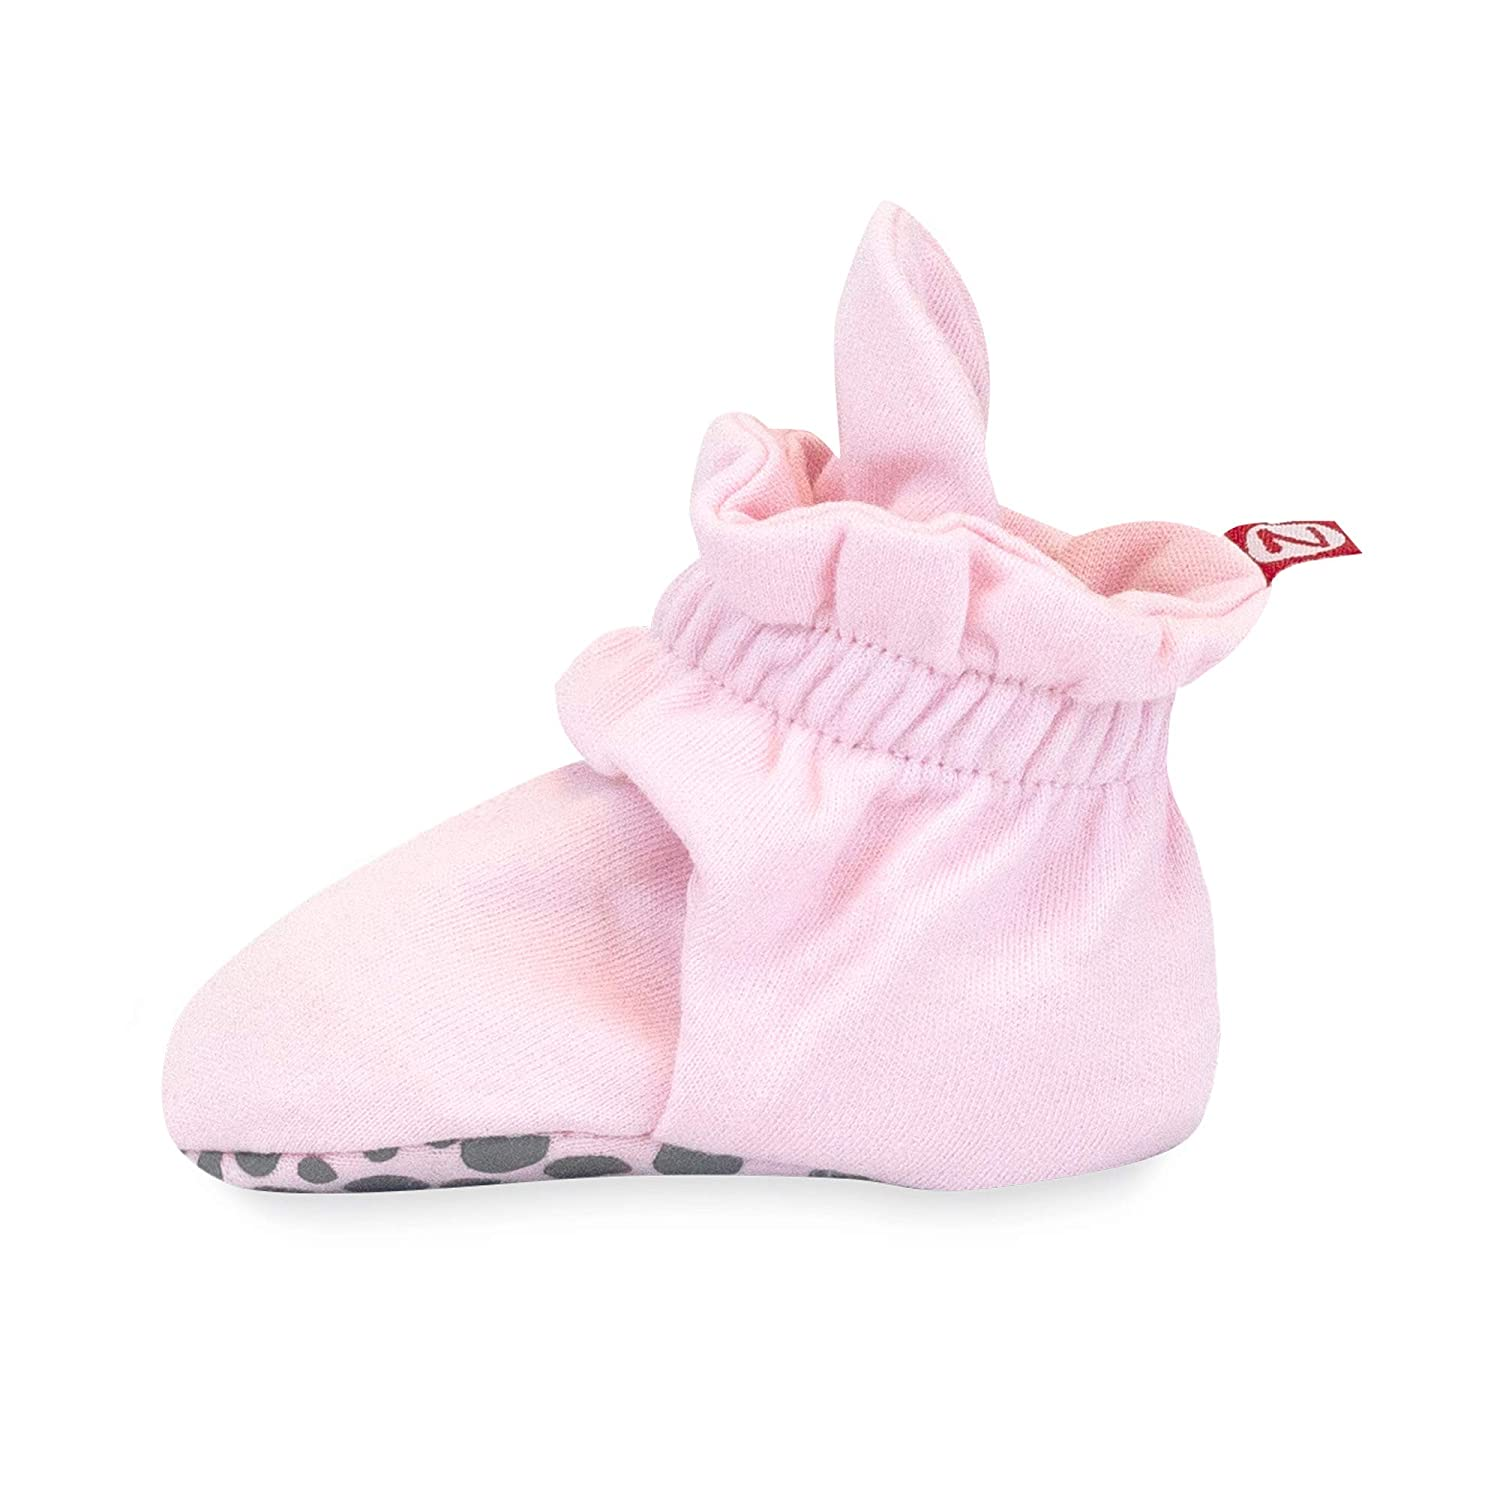 Zutano Cotton Baby Booties with Grippers - Soft Sole Stay On Baby Shoes